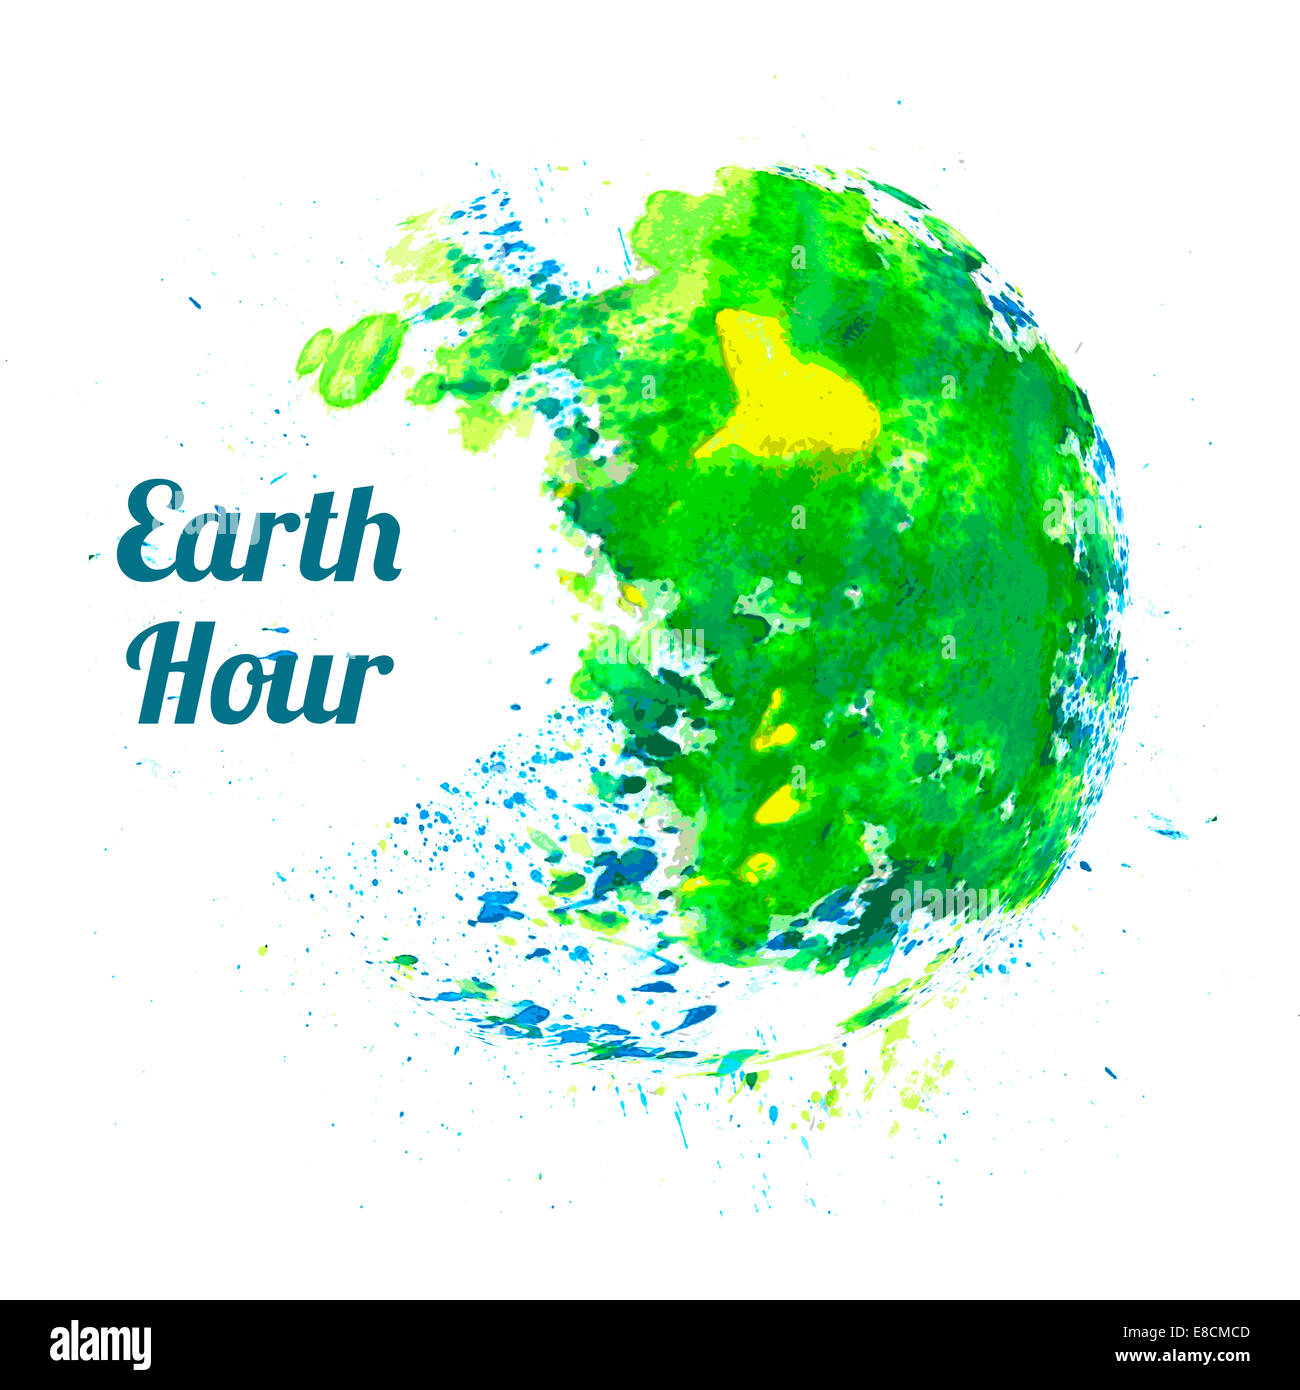 Illustration for Earth Hour - Stock Image